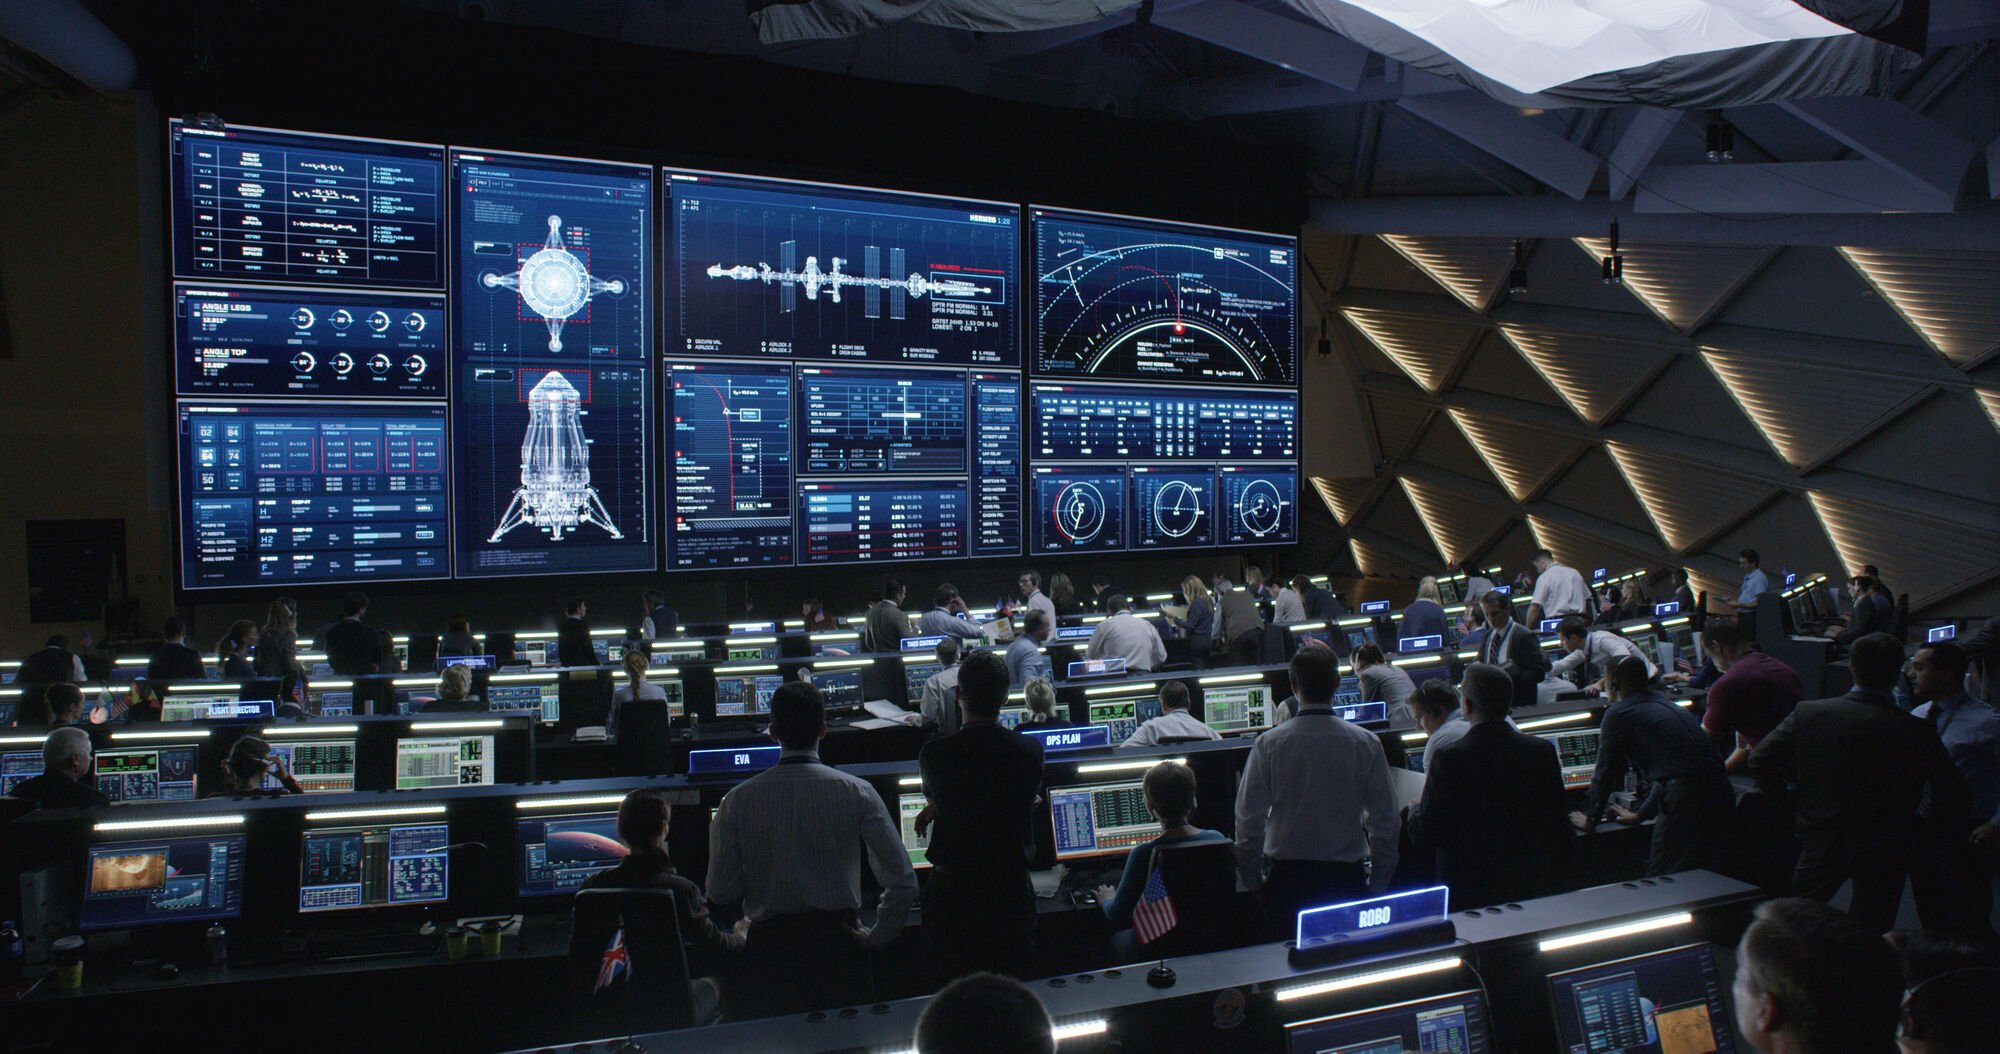 mission control room for spacecraft